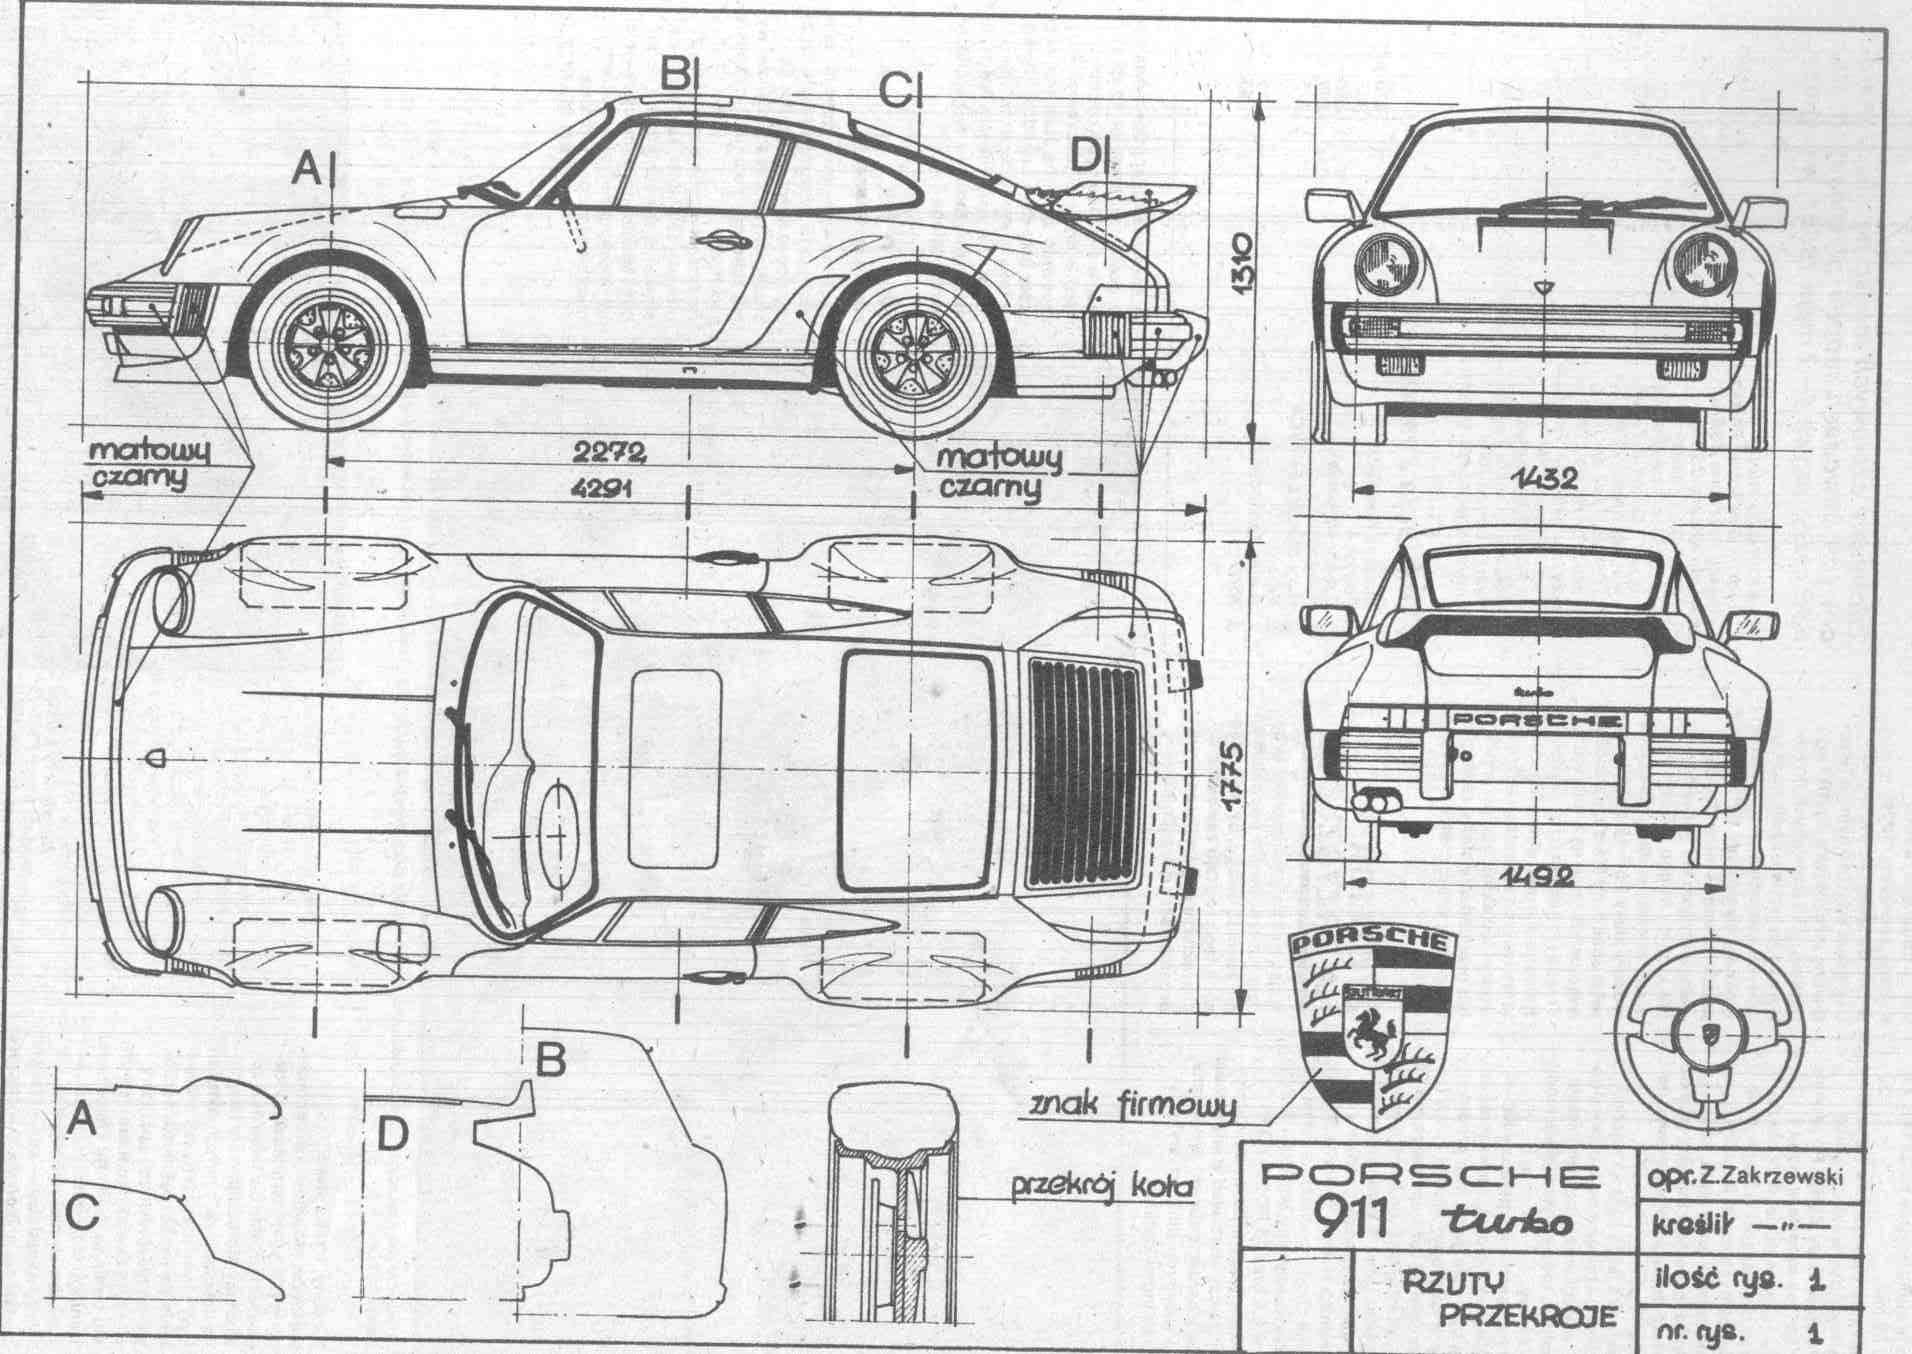 Porsche 911 turbo blueprint download free blueprint for for Free 3d blueprints